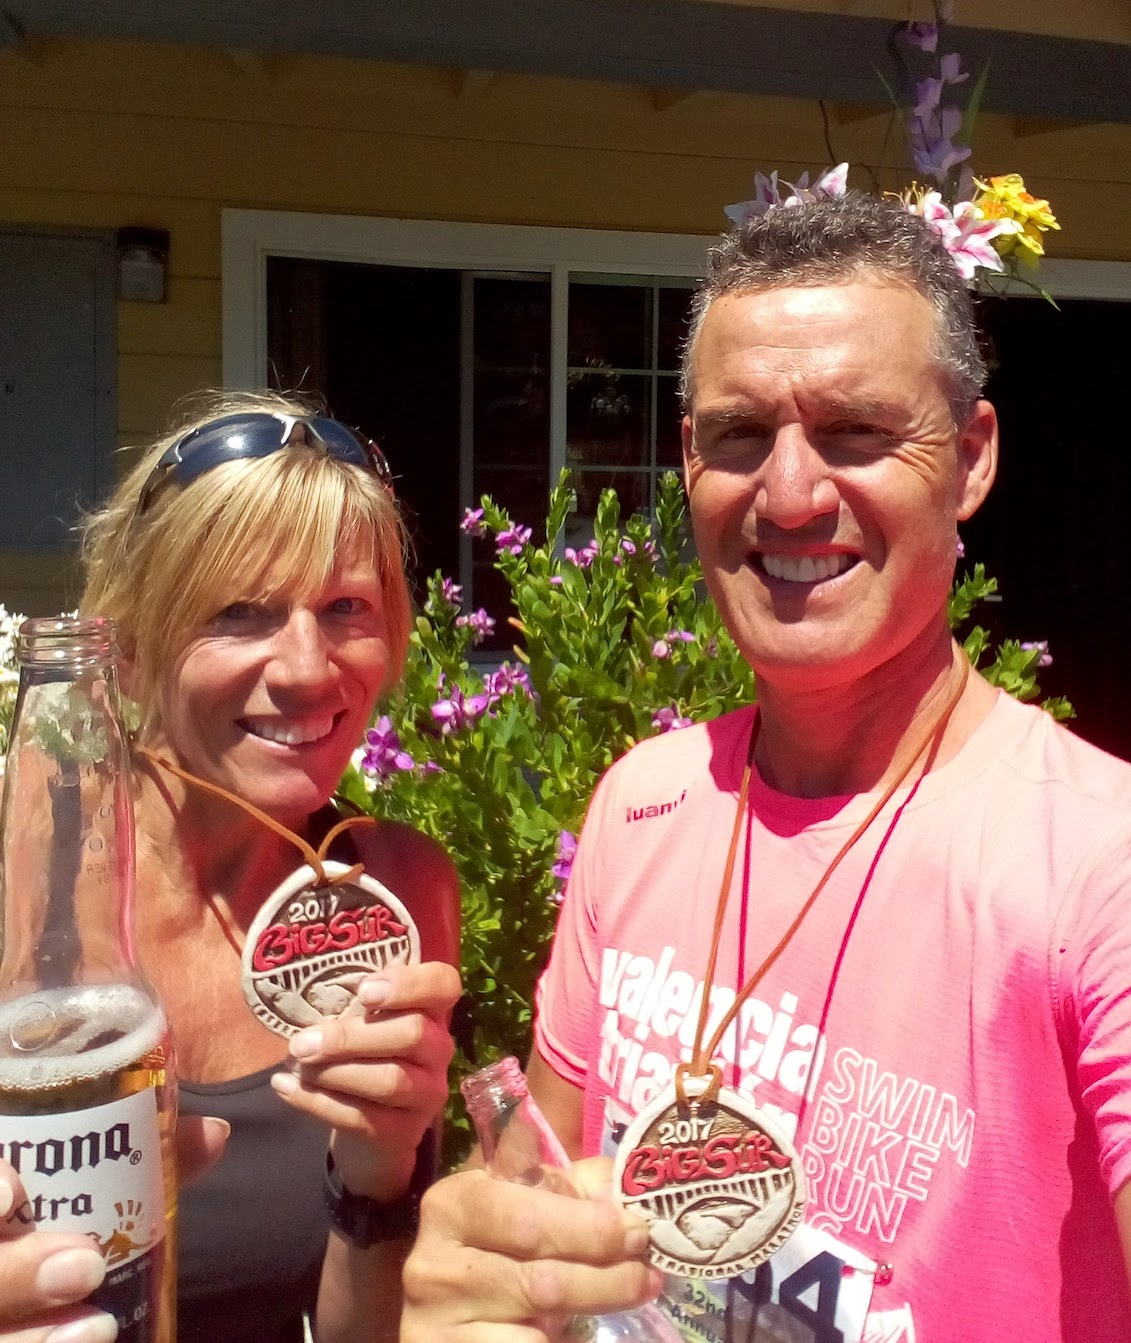 San Francisco Bay Area - Big Sur Marathin medals